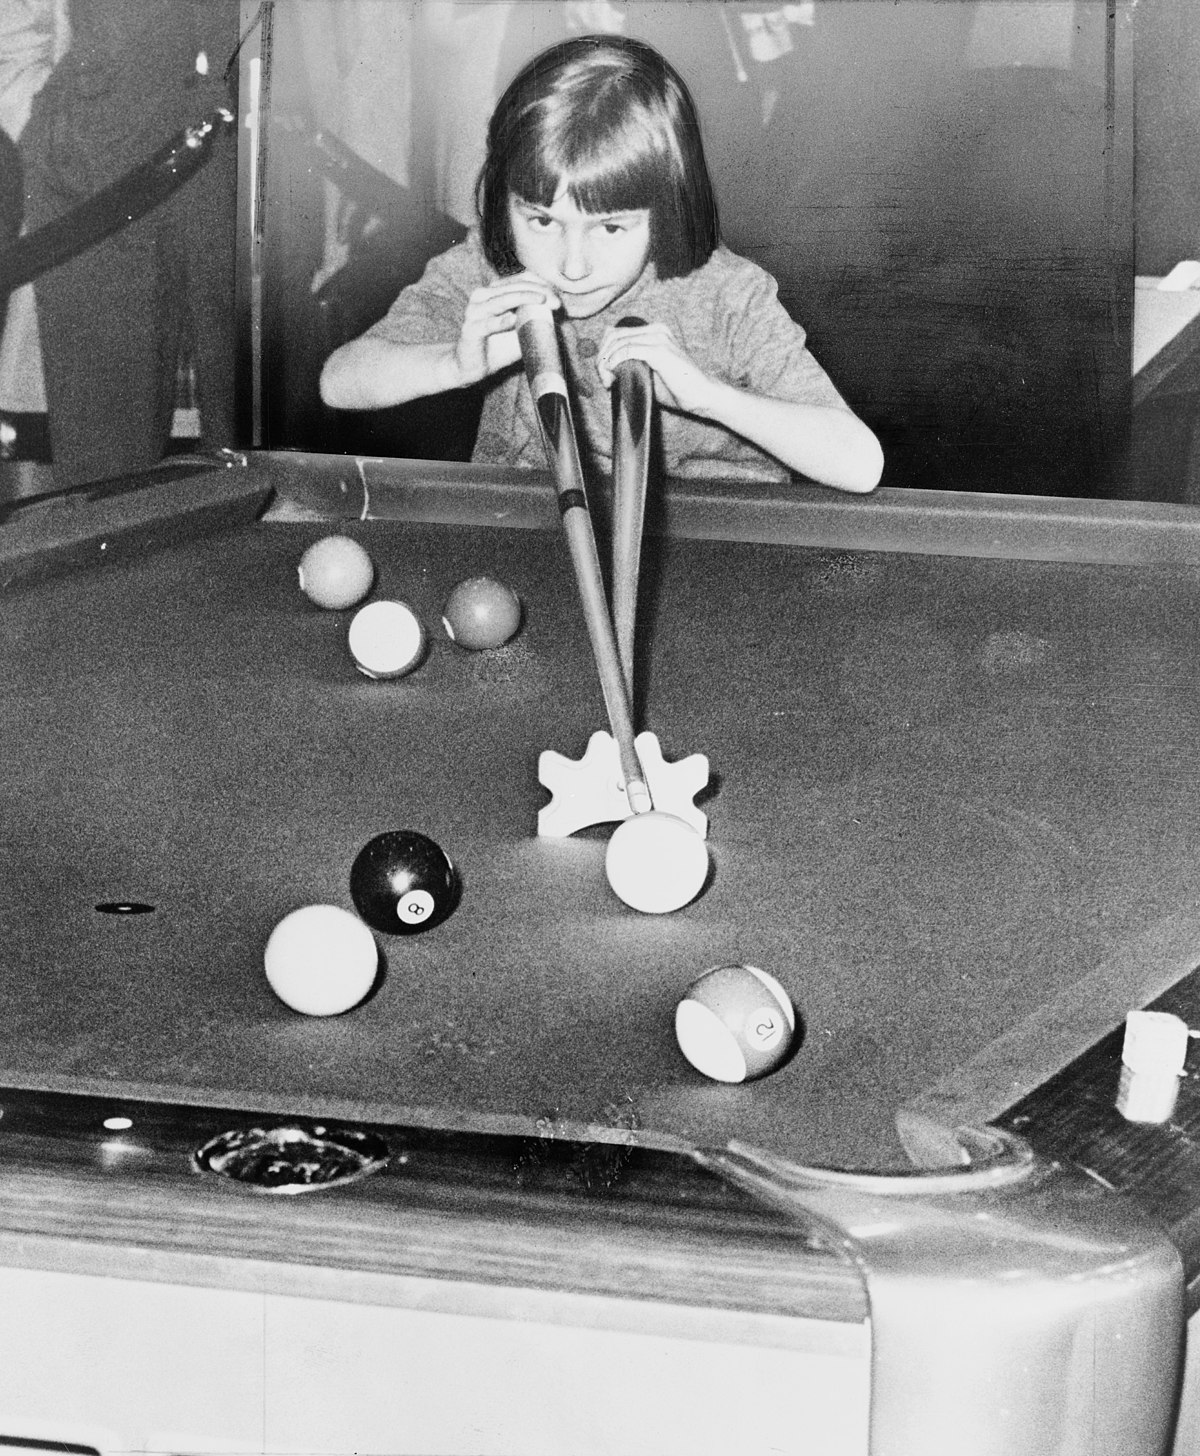 Jean Balukas Wikipedia - Mosconi pool table